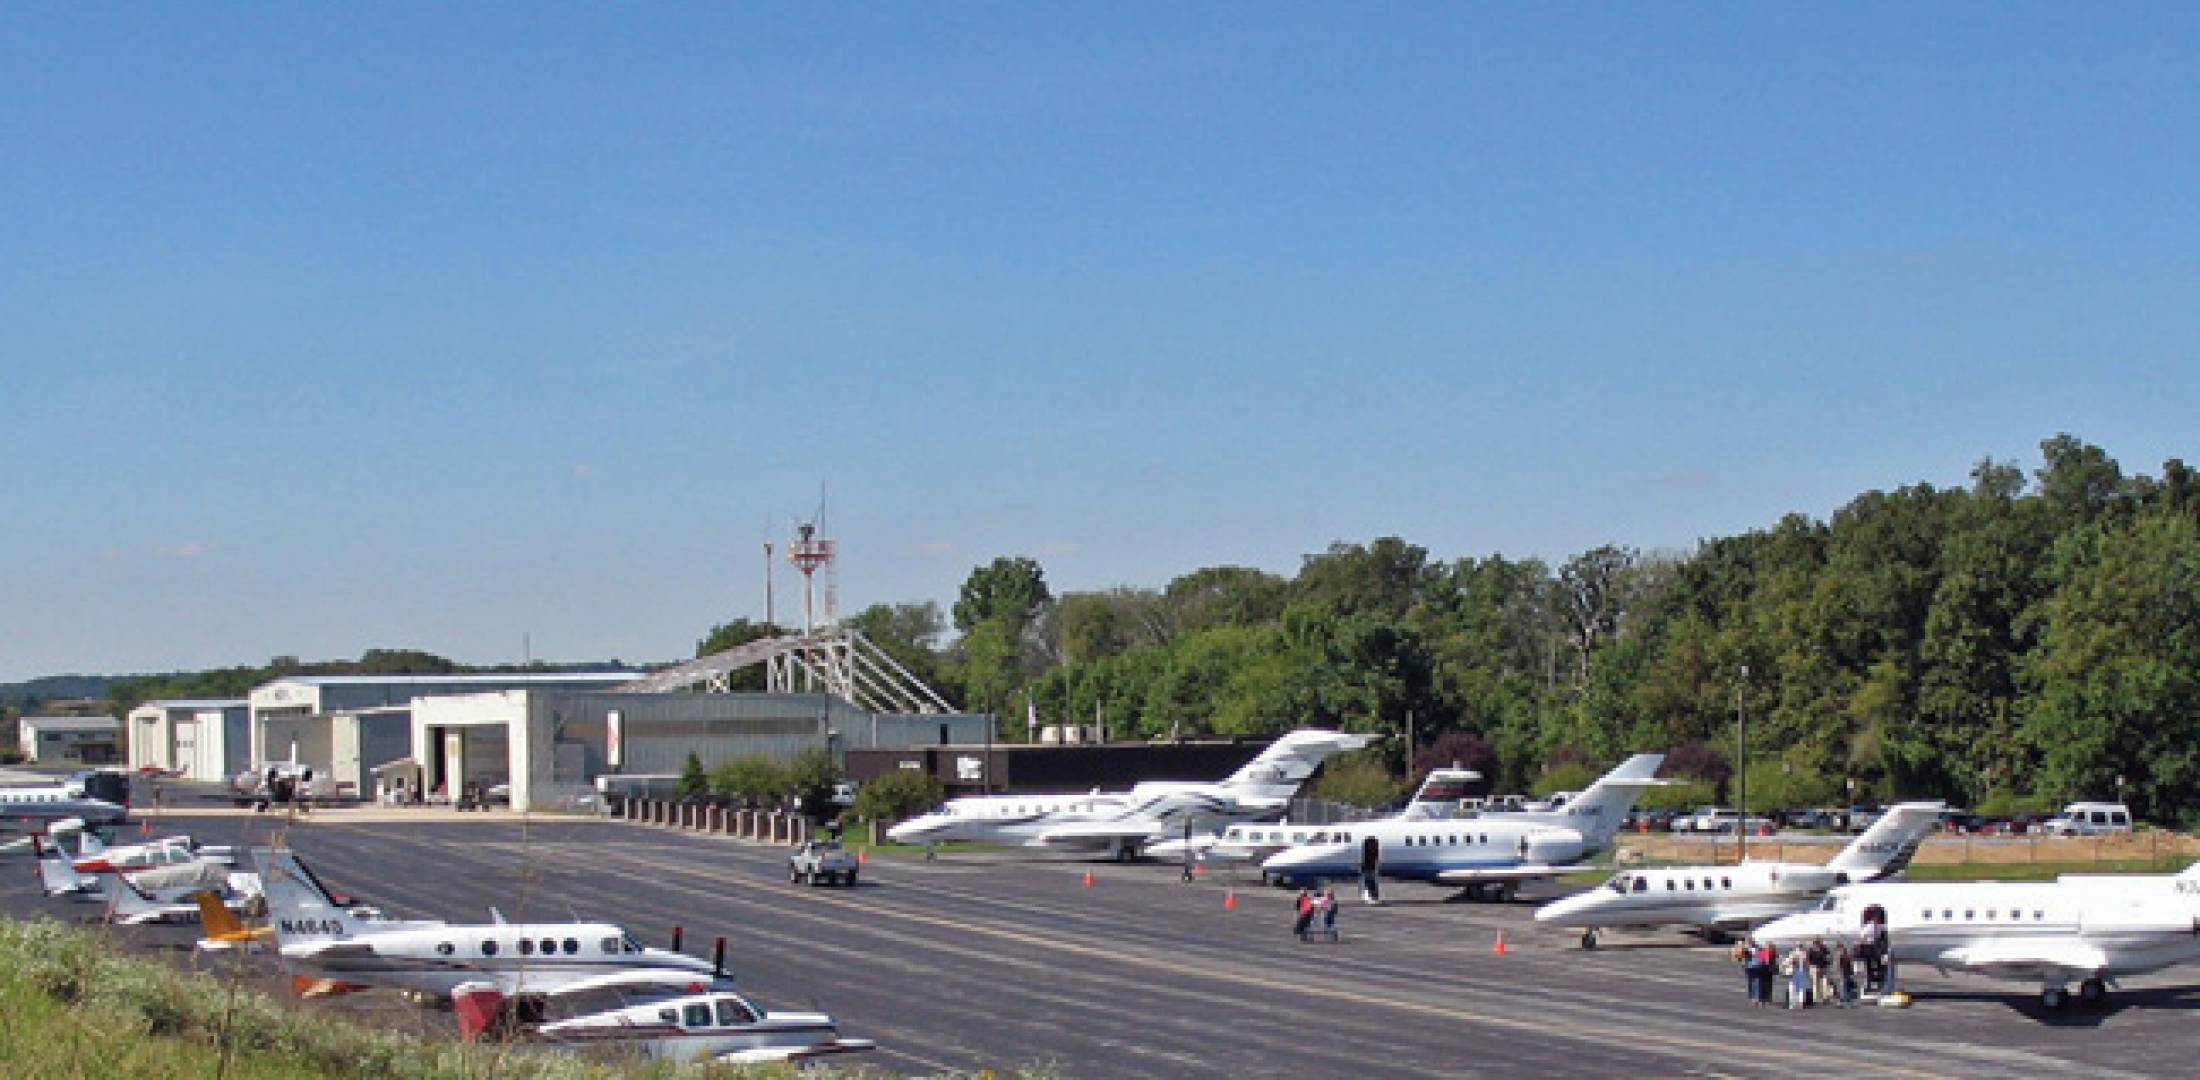 Chester County Aviation at G.O. Carlson Airport in Coatesville, Pa., joined the Ross Aviation network this year.